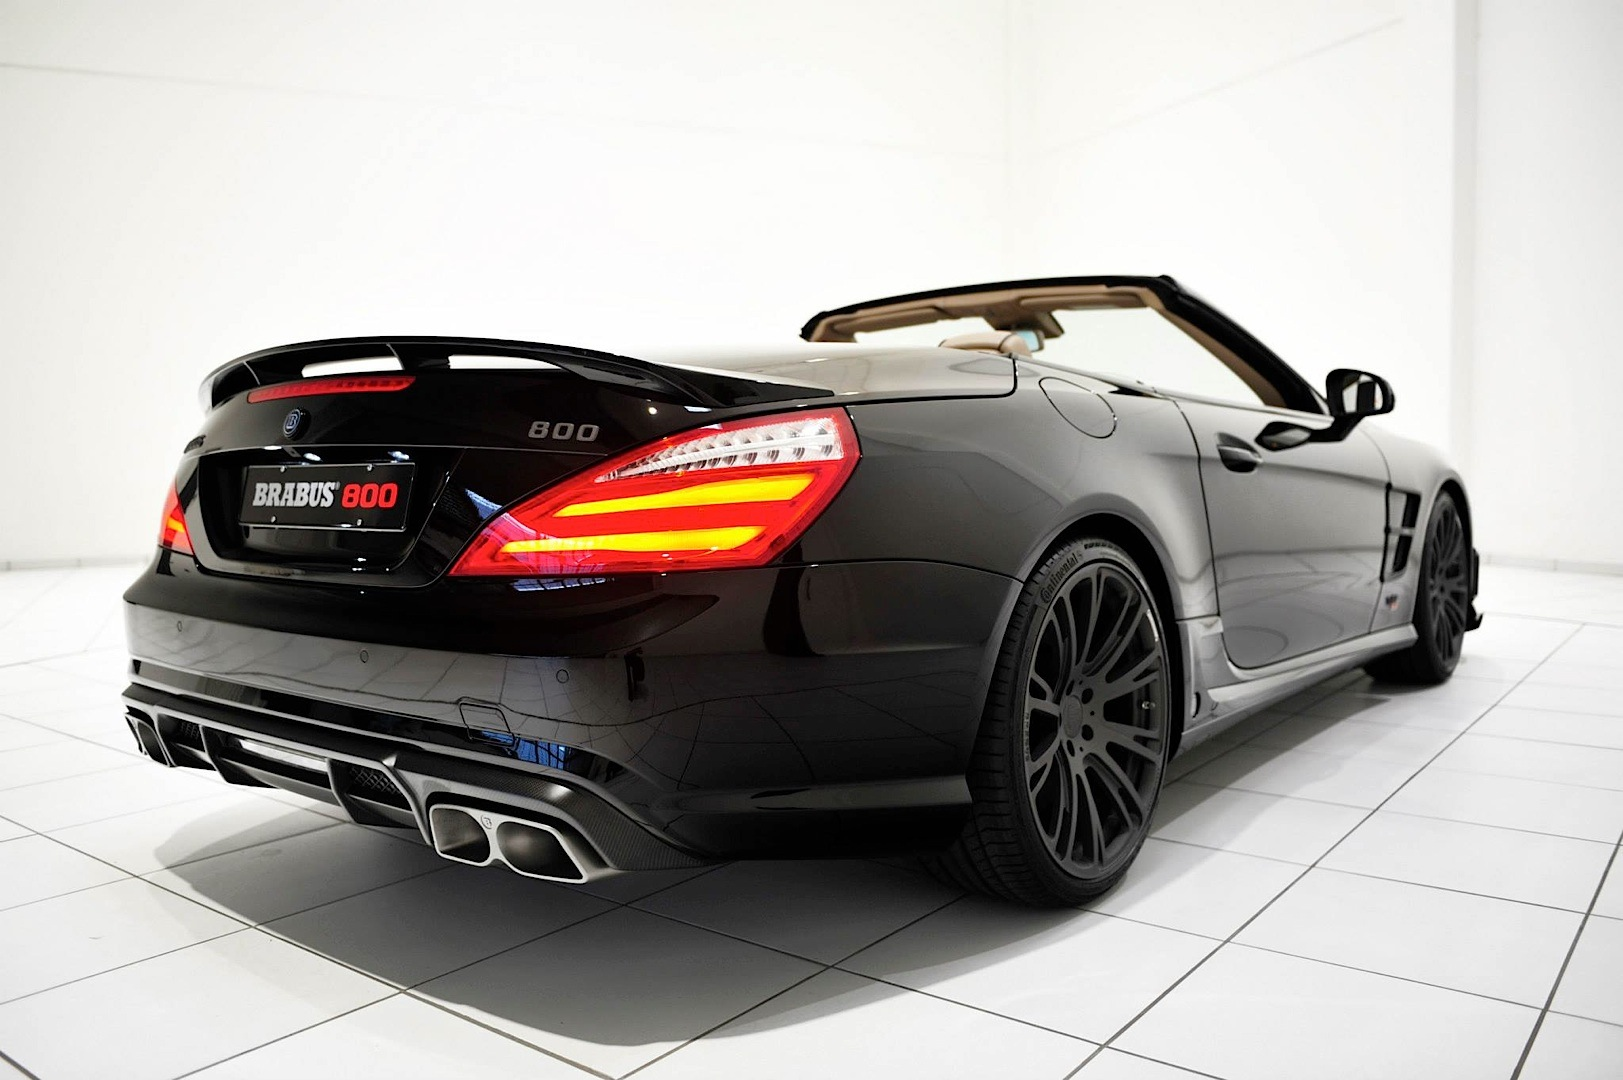 Most Expensive Car Hd Wallpaper Brabus 800 Package Takes The Sl 65 Amg Up A Notch